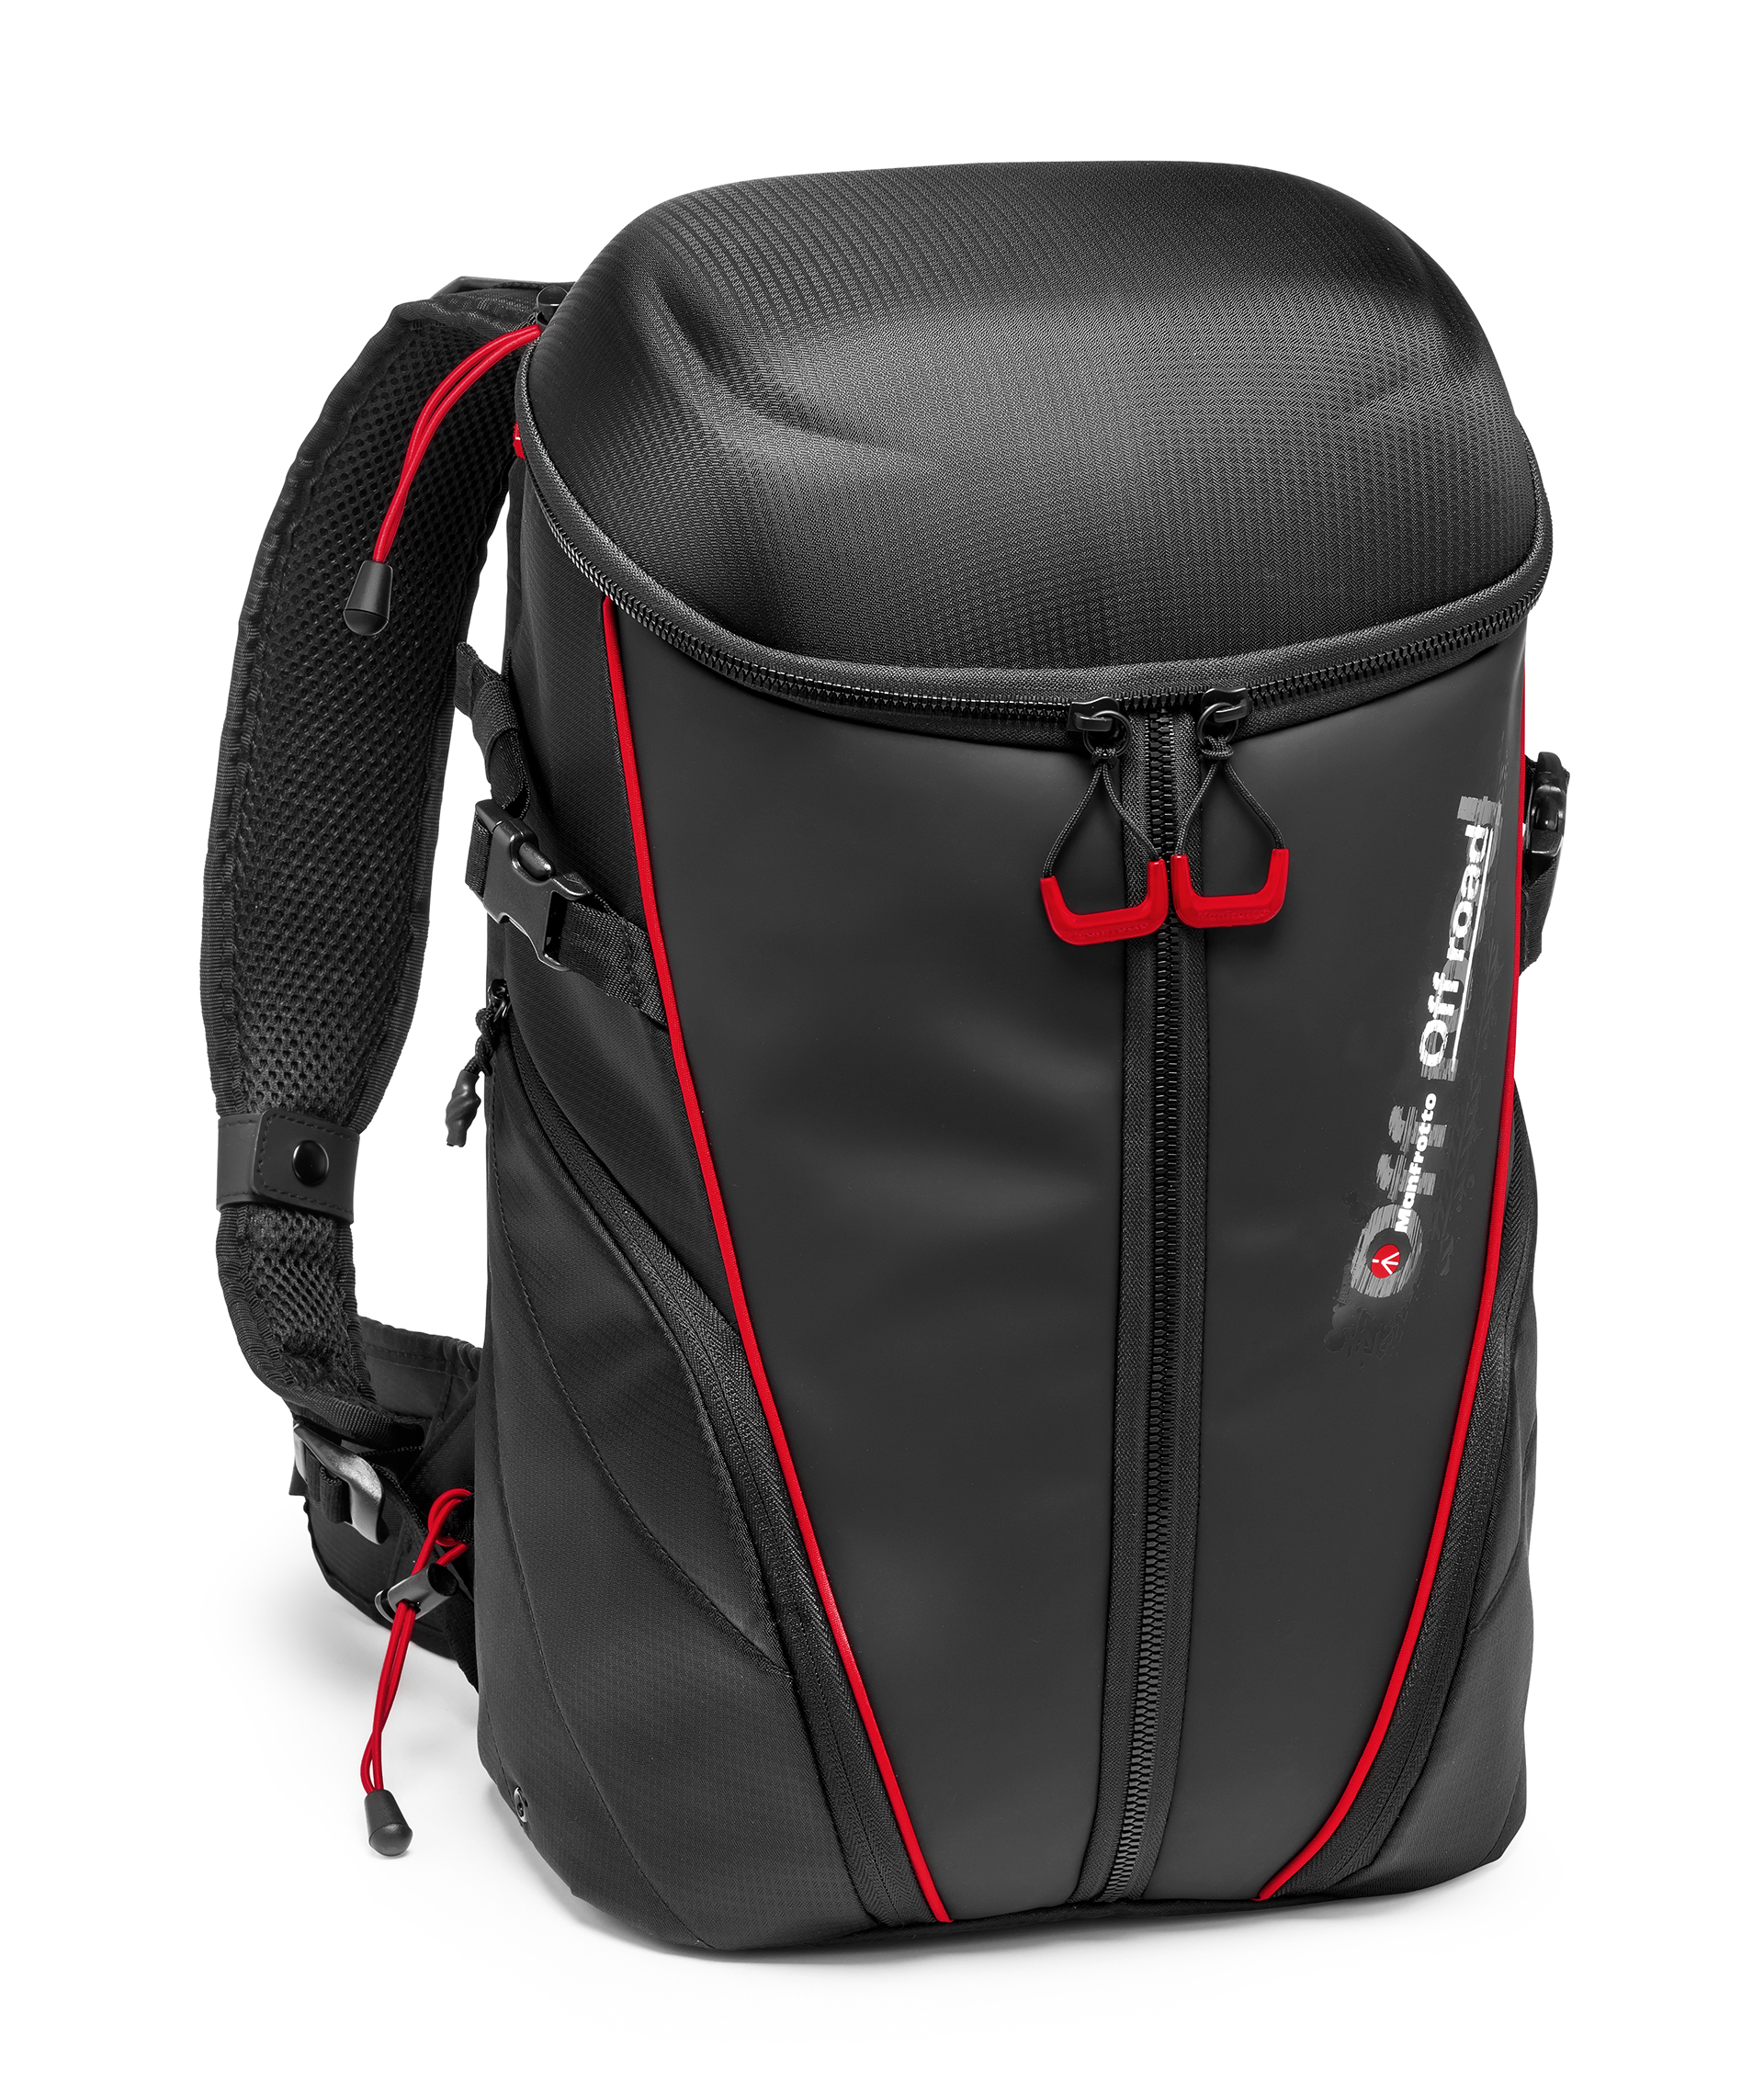 Slimme Verlichting Action Manfrotto Action Camera Backpack Mb Or Act Bp Gadgetgear Nl